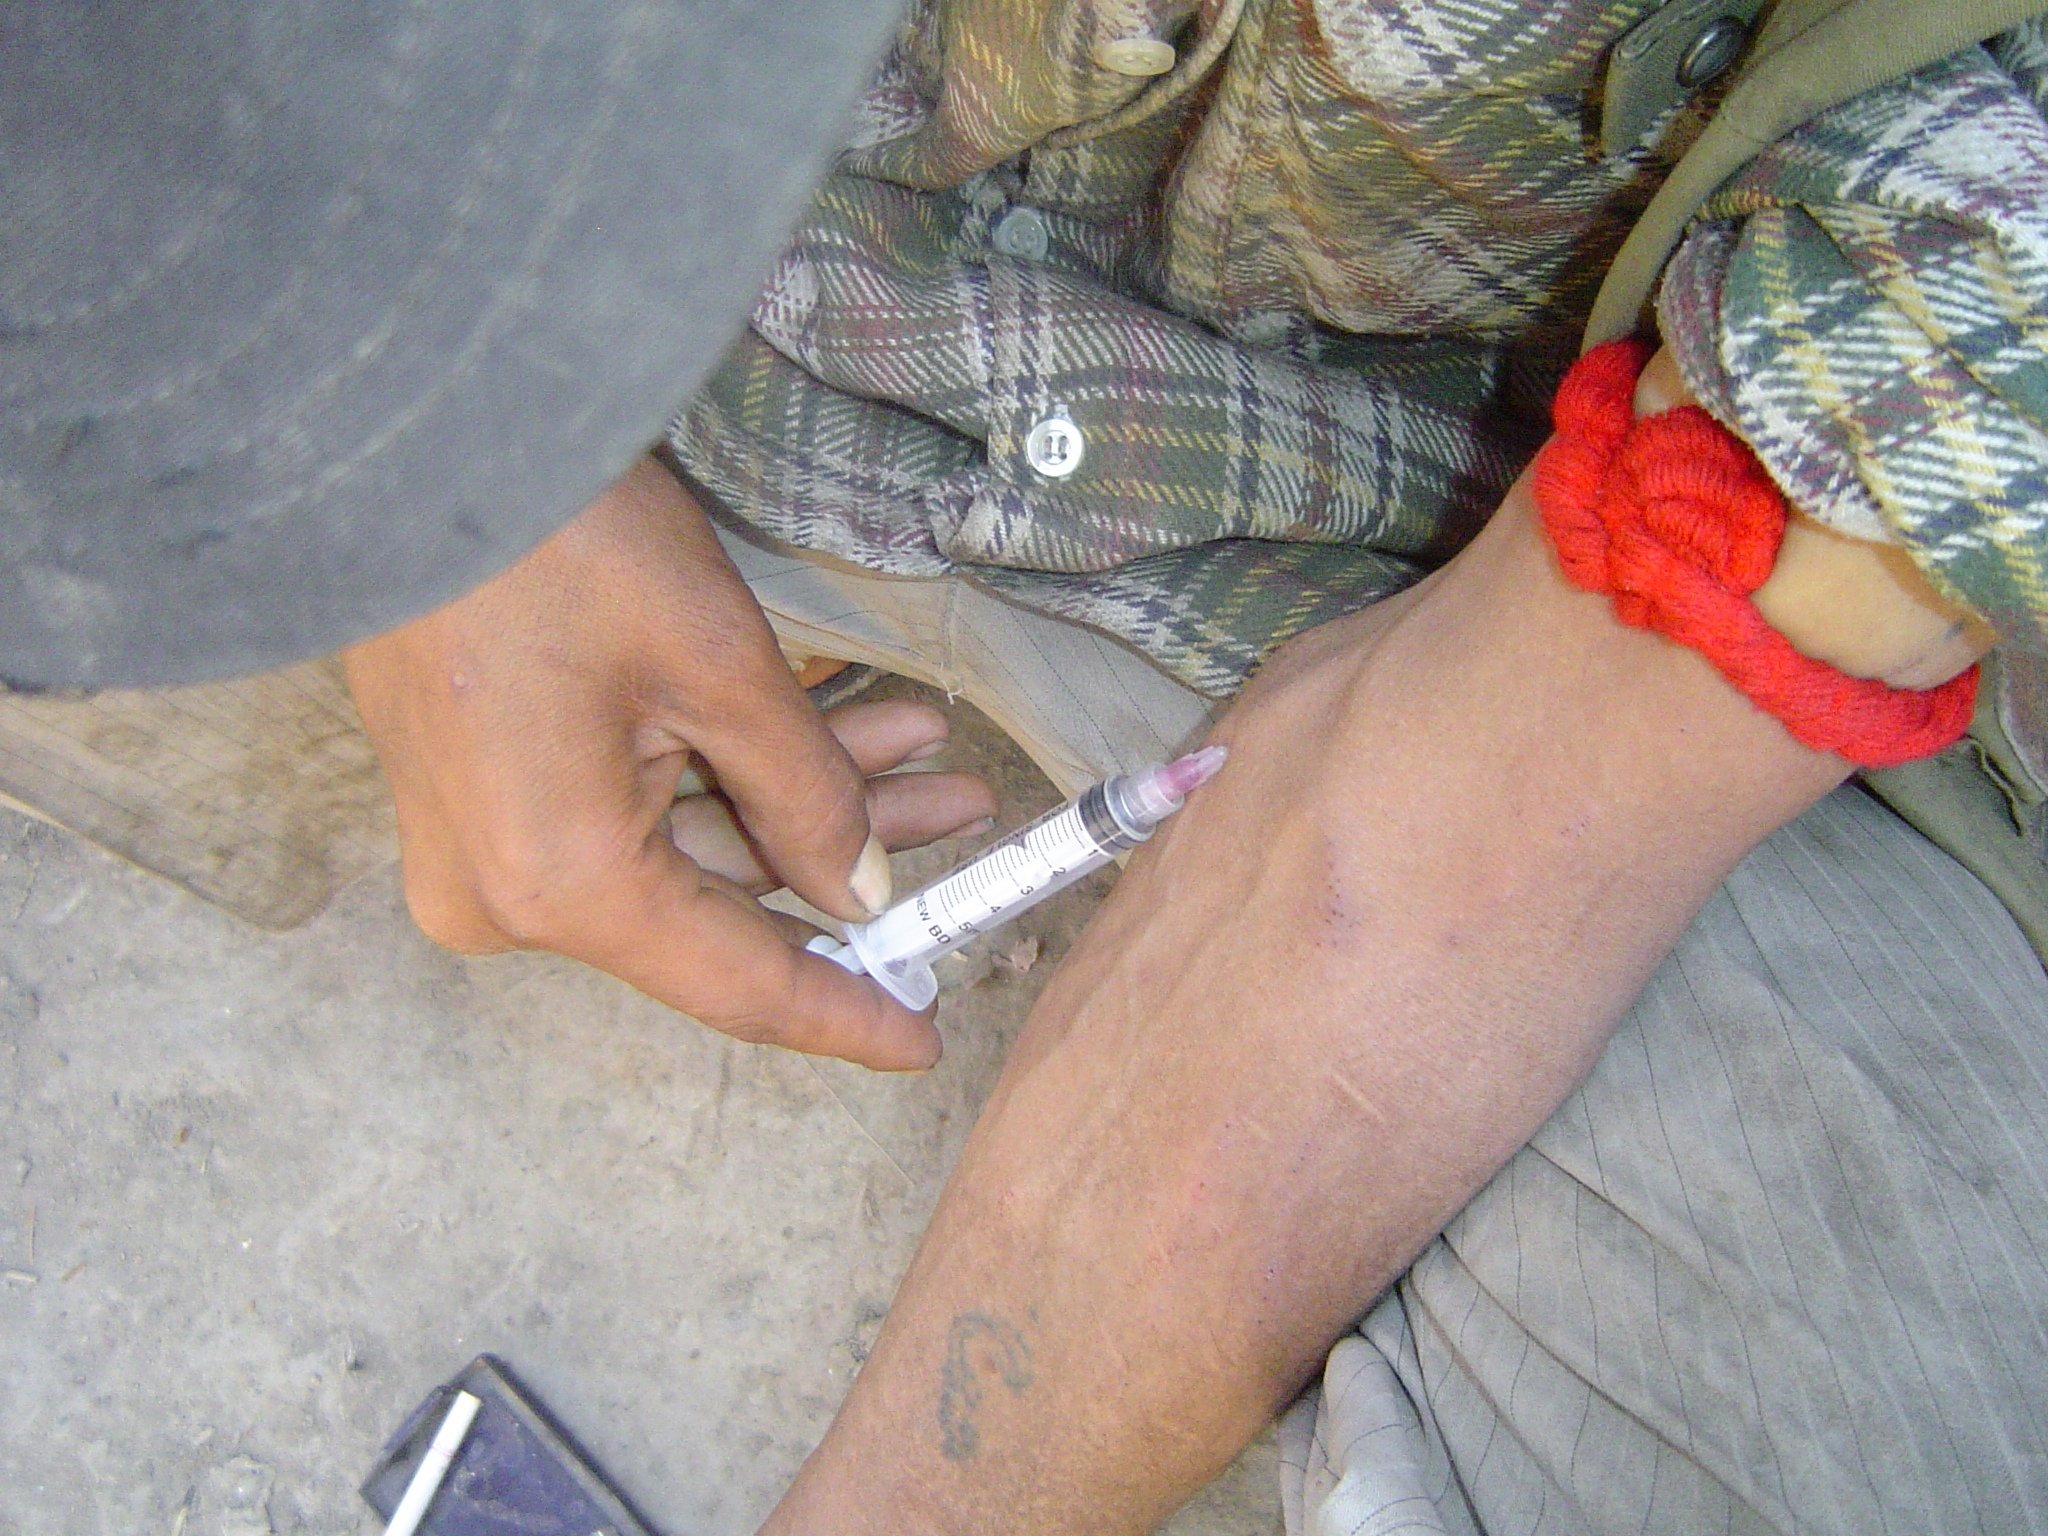 An Afghan man injects heroin in Kabul.